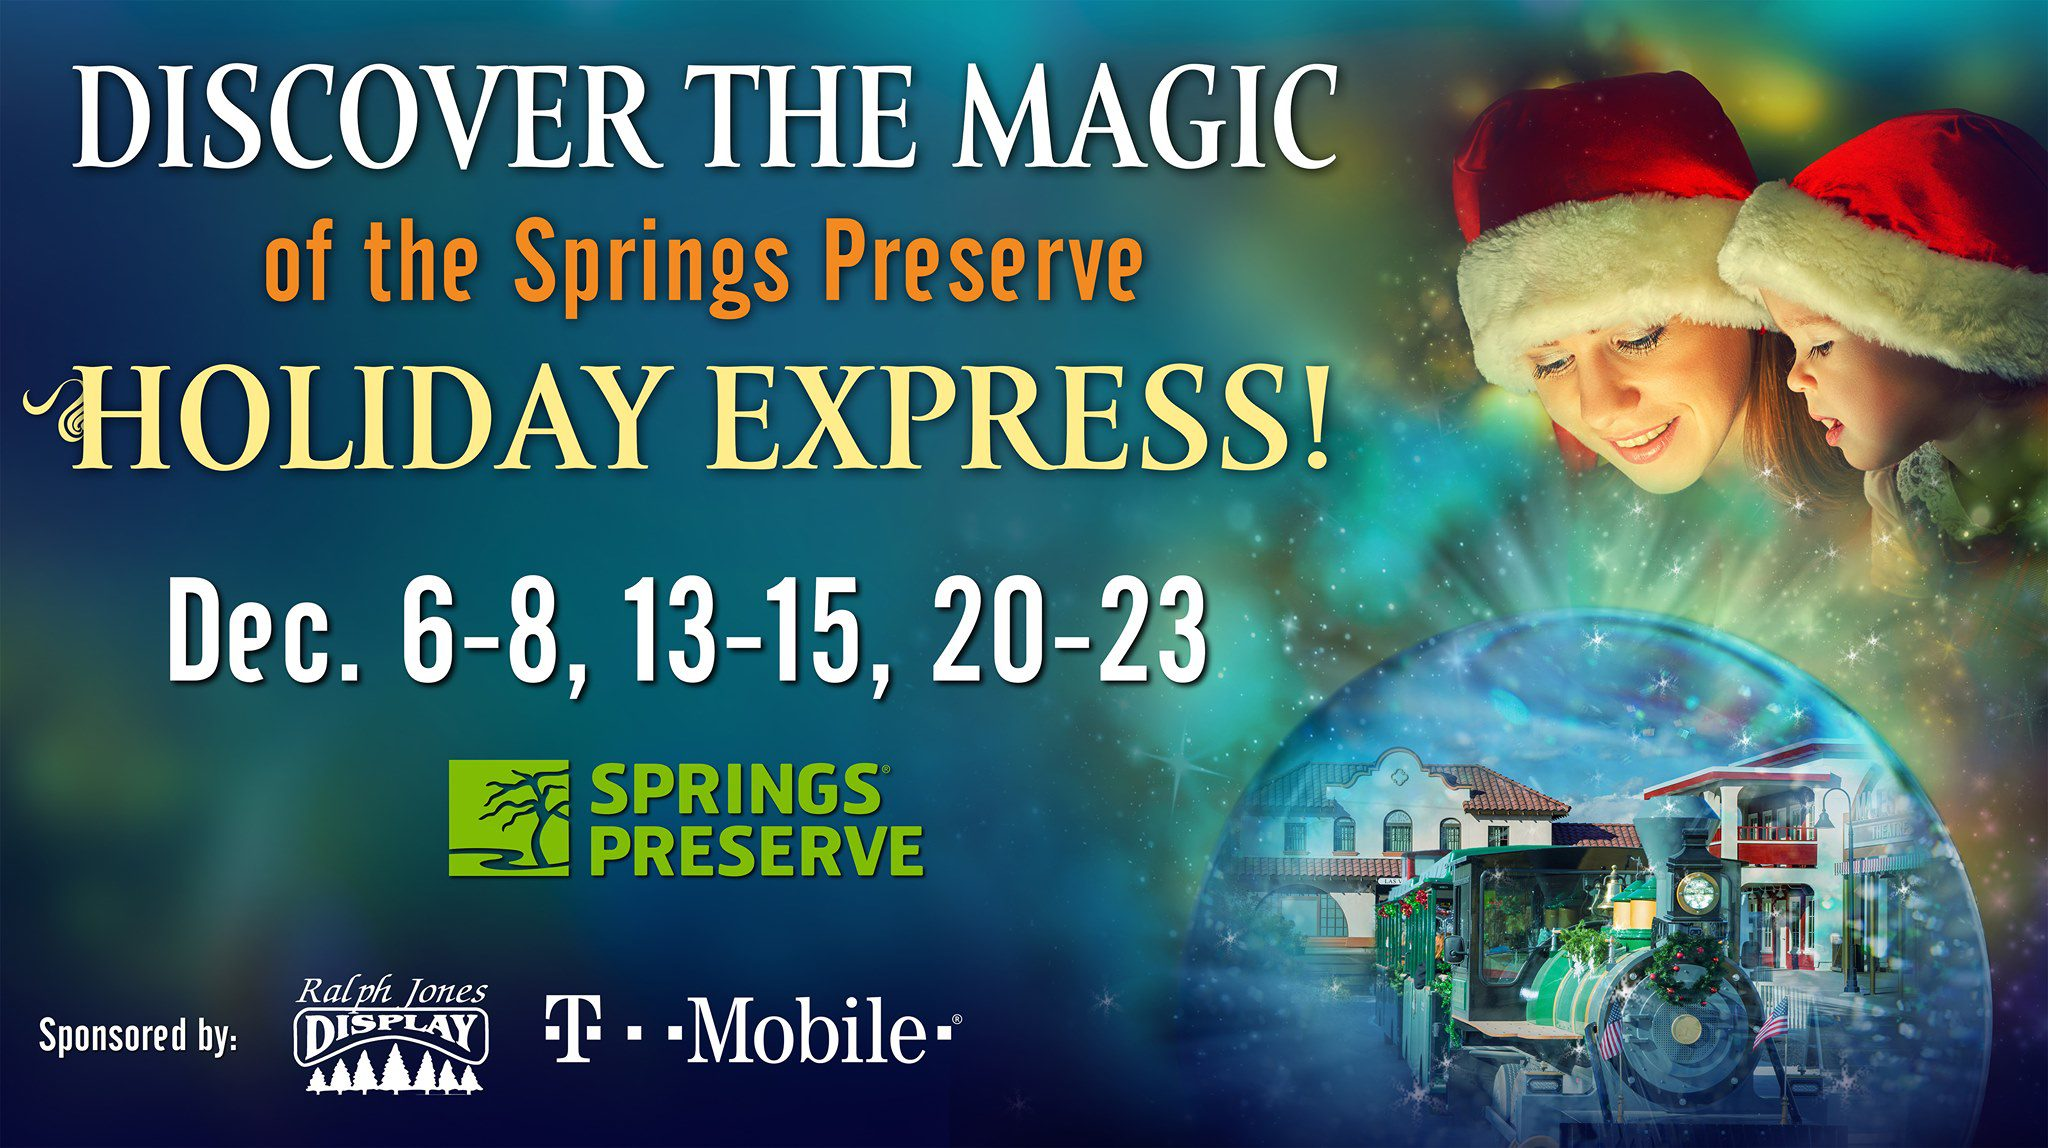 "All aboard the Springs Preserve's Holiday Express train at Springs Preserve. Ride away on a magical train ride to Santa's village. Your holiday adventure includes special time with Santa in his cottage, fun holiday crafts, winter cookie decorating, storytime, reindeer games (oh what fun),  and the white stuff -""snow"" (yes, snow!)."